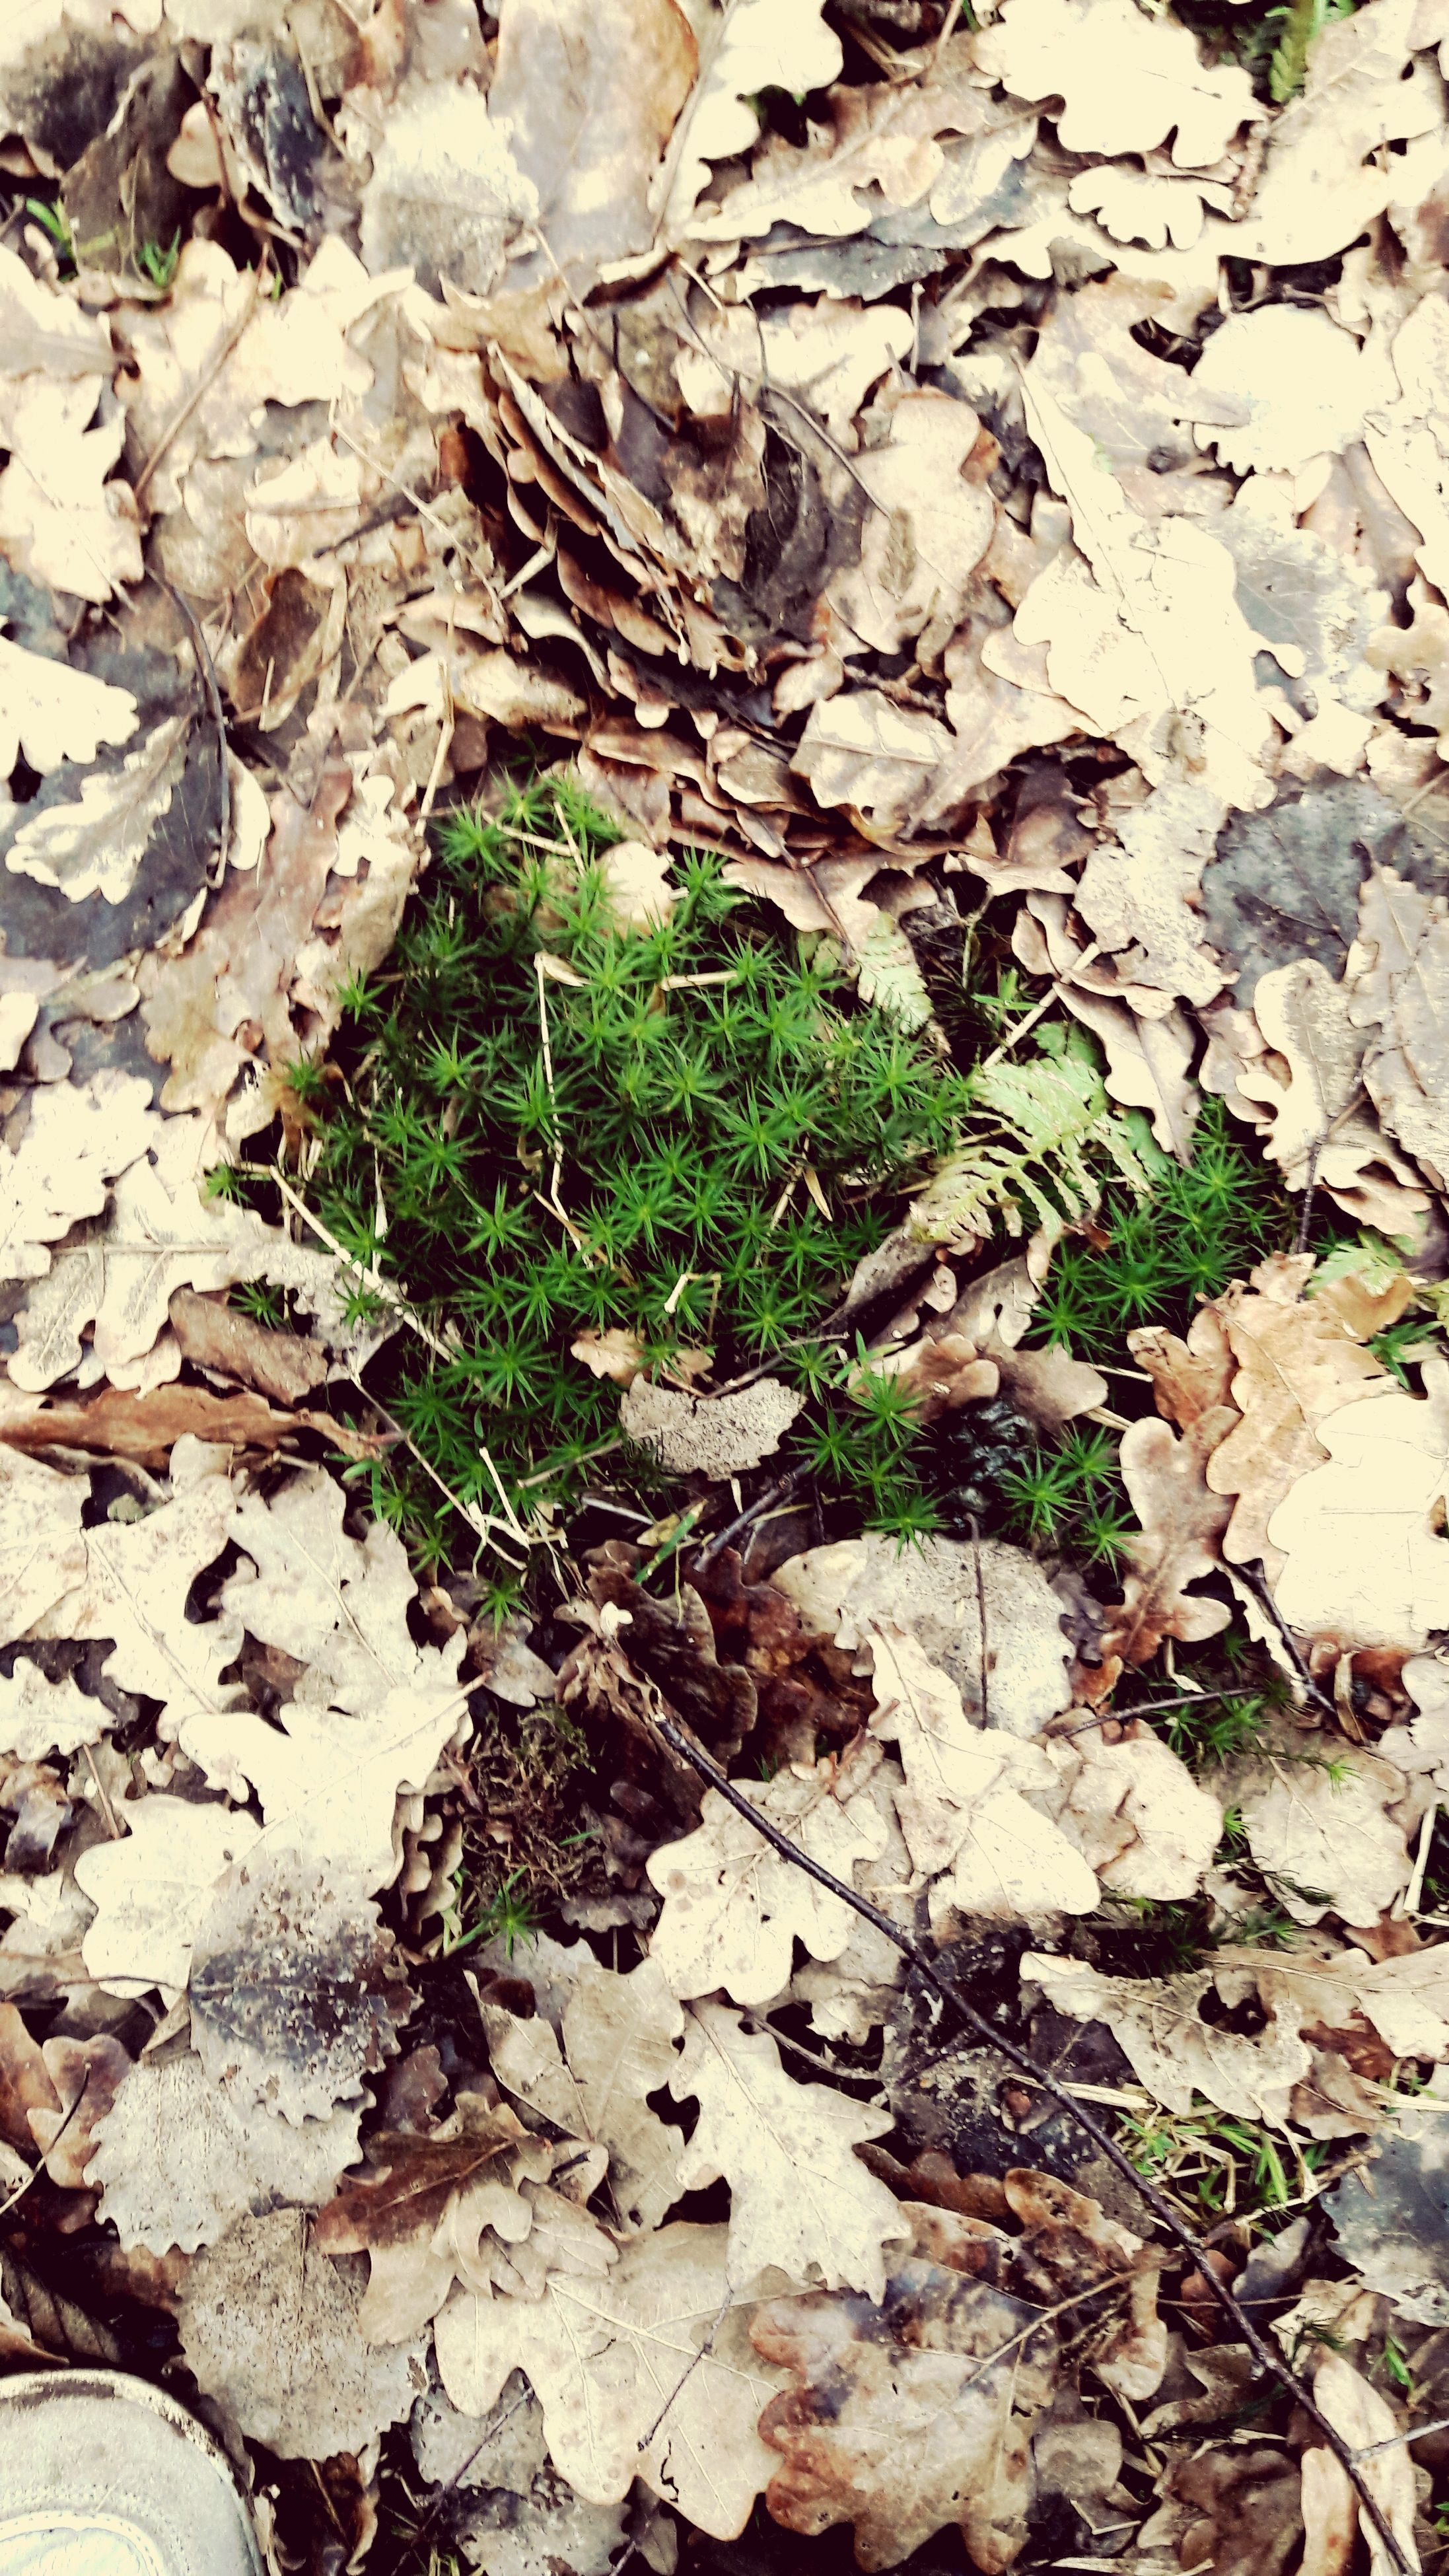 leaf, nature, growth, high angle view, plant, no people, close-up, green color, ivy, outdoors, beauty in nature, day, backgrounds, fragility, tree